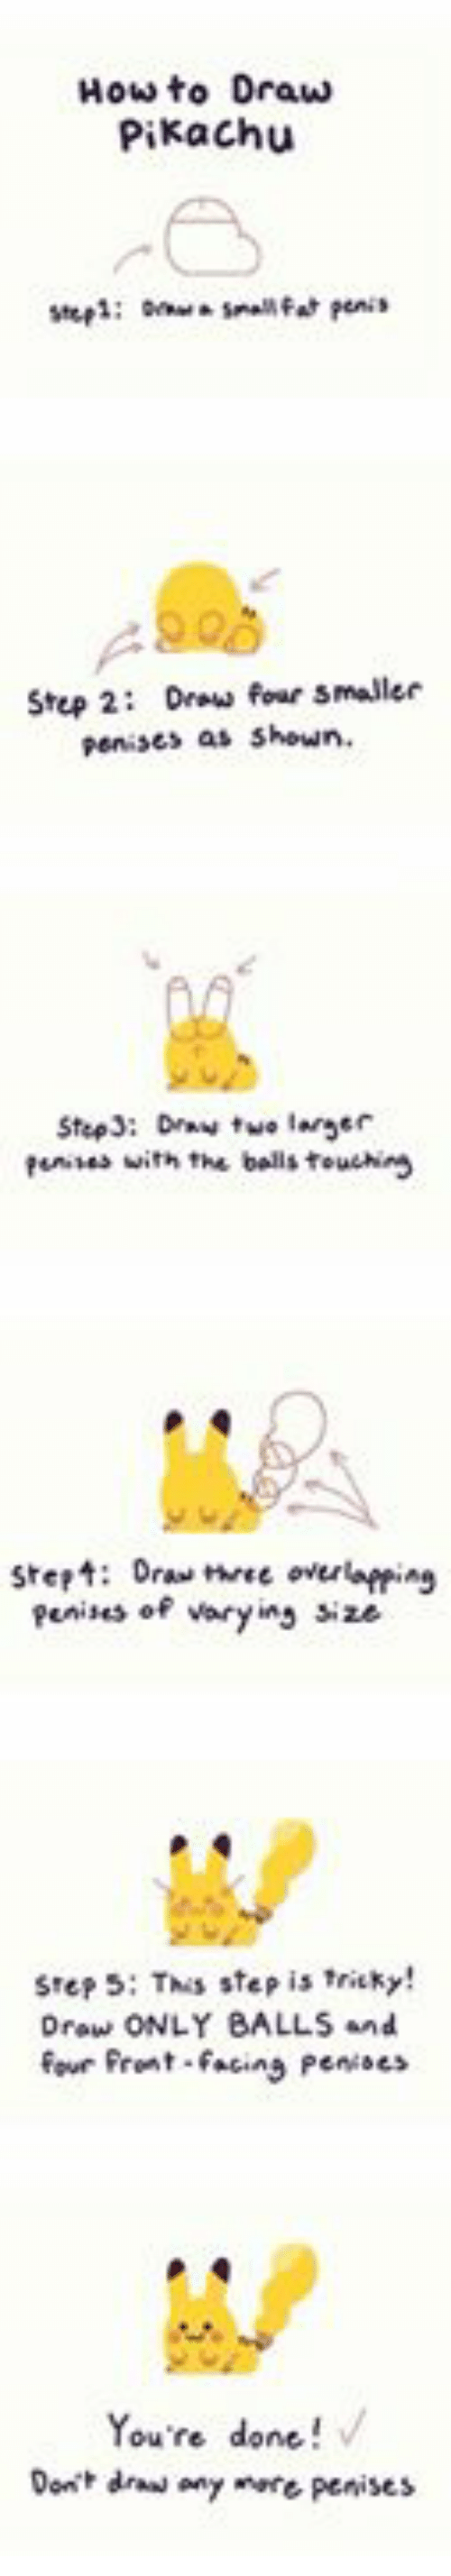 Funny pikachu and drawings how to draw pikachu step 2 draw four